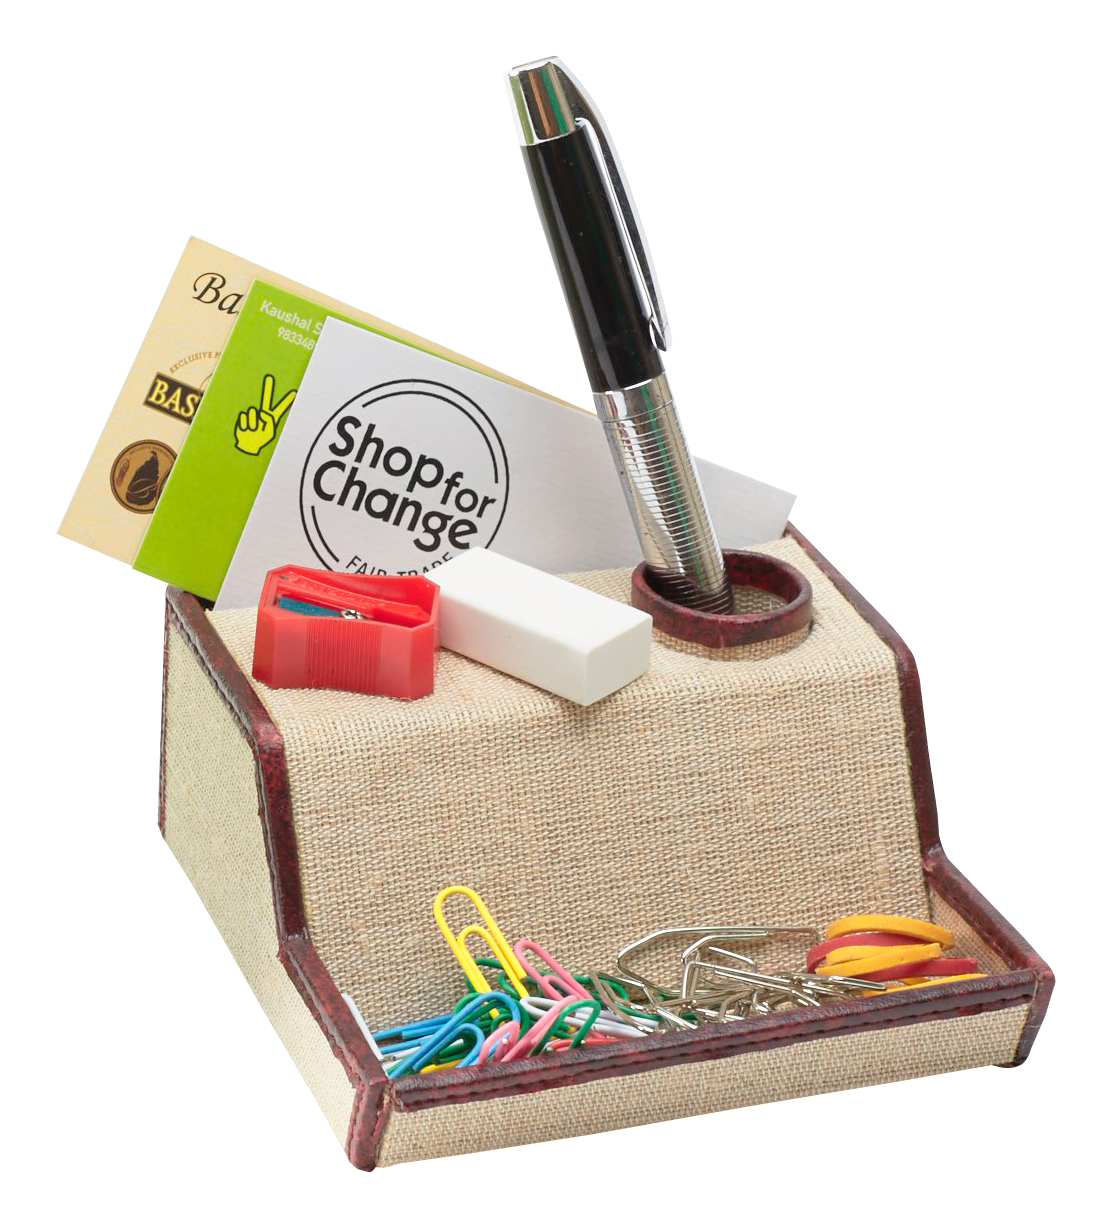 Pen clipart object. Holder png image purepng